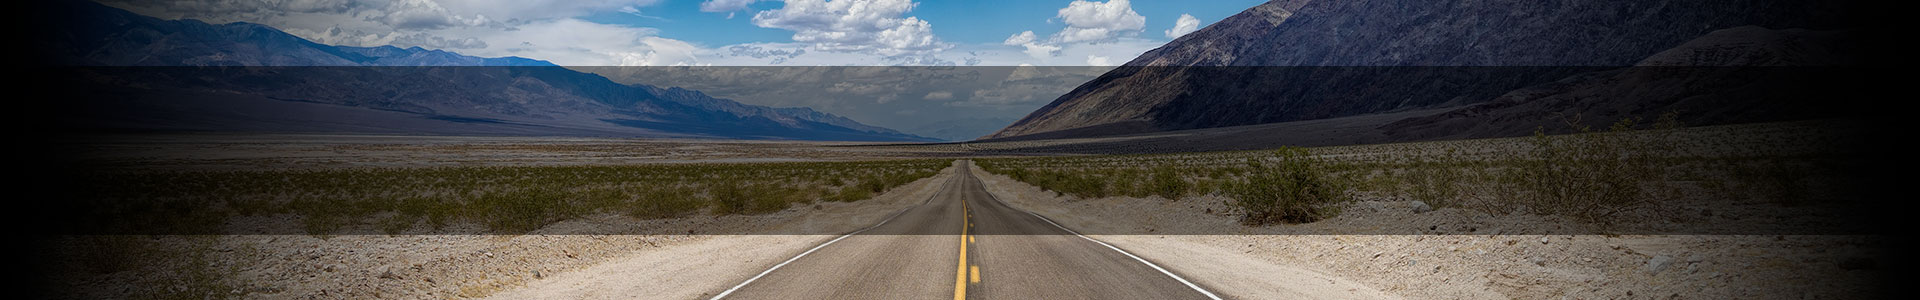 Road through the desert in the Summer.